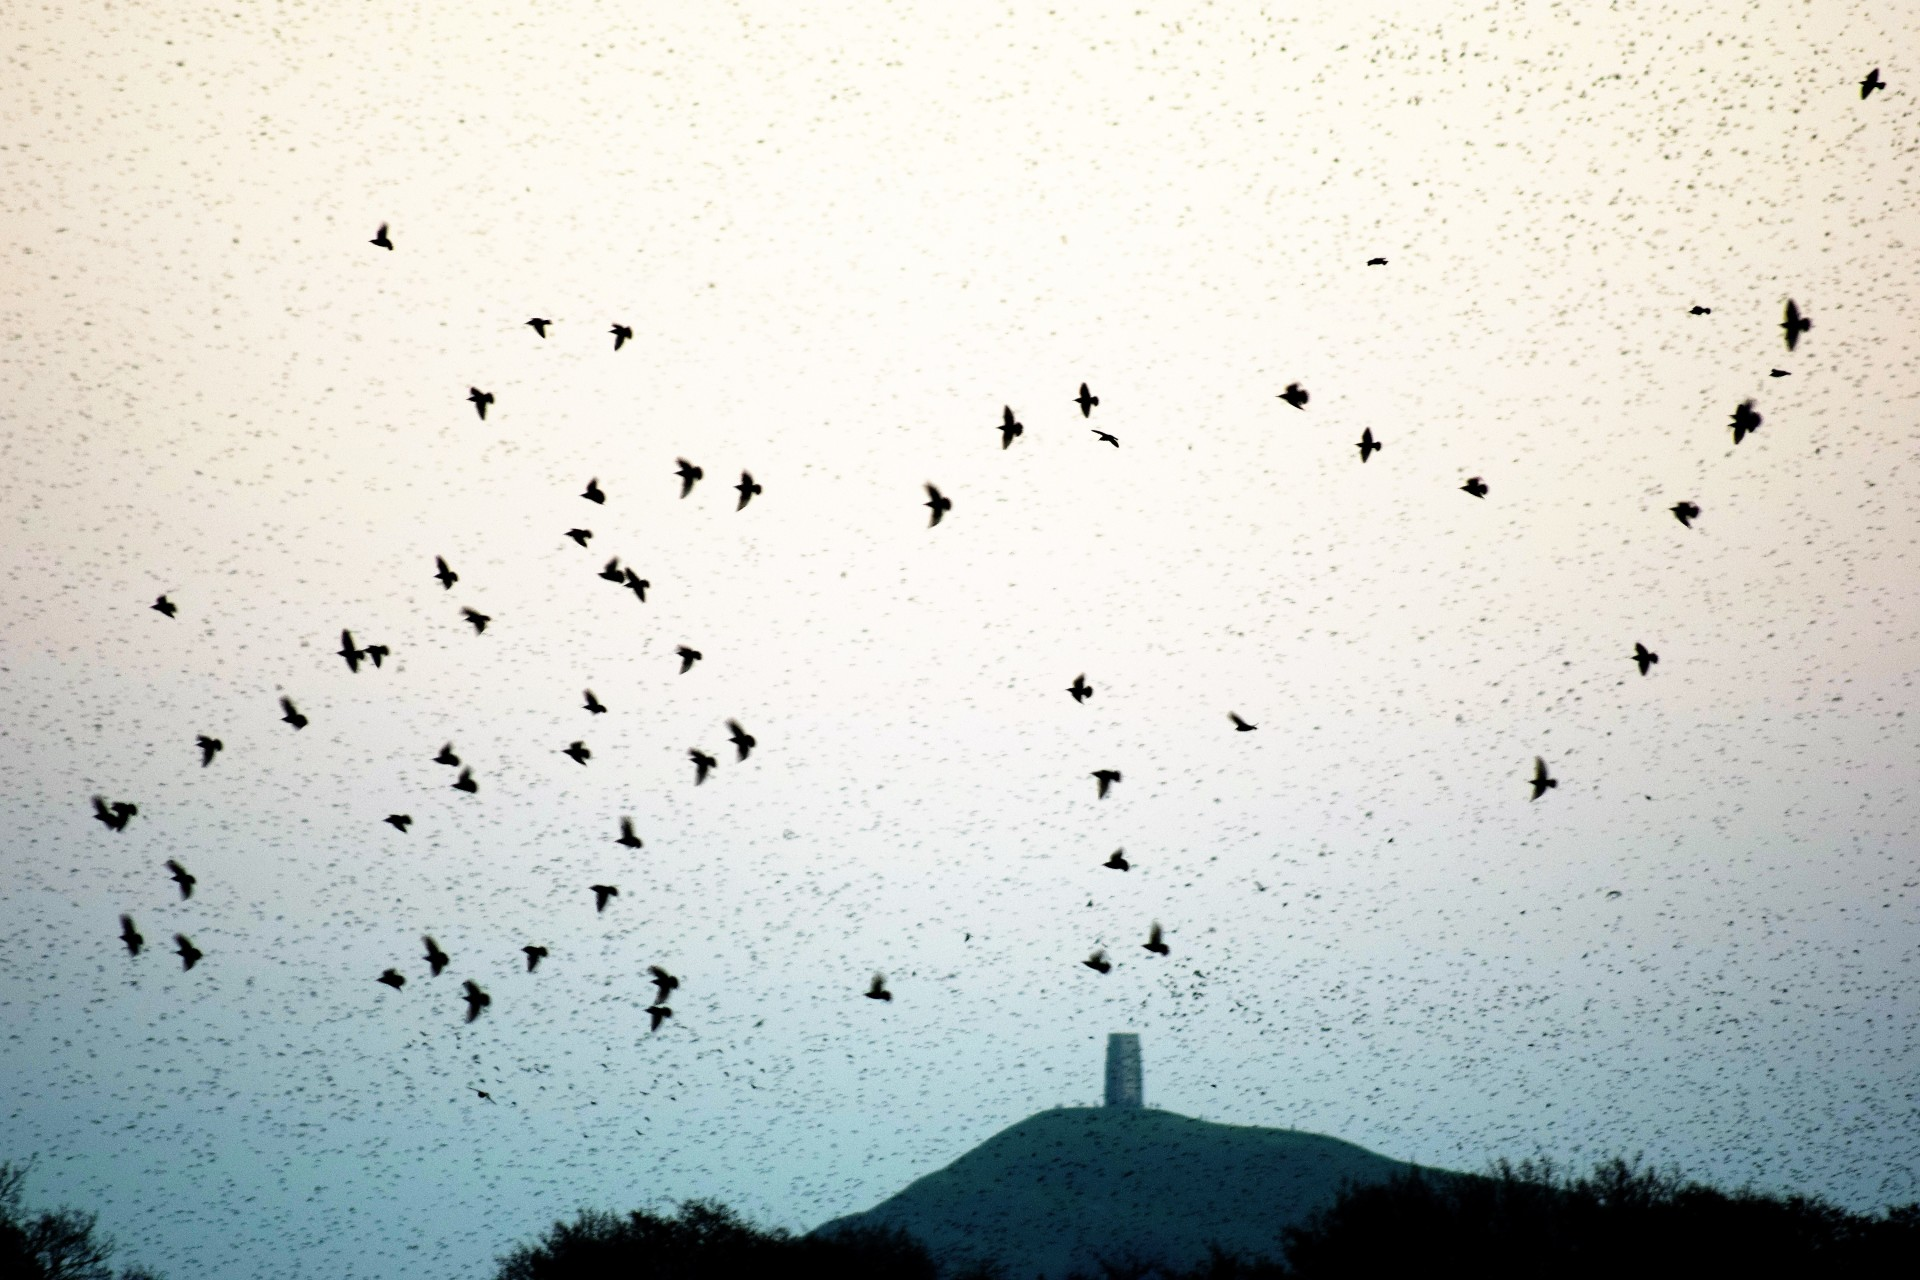 Glastonbury's Starlings